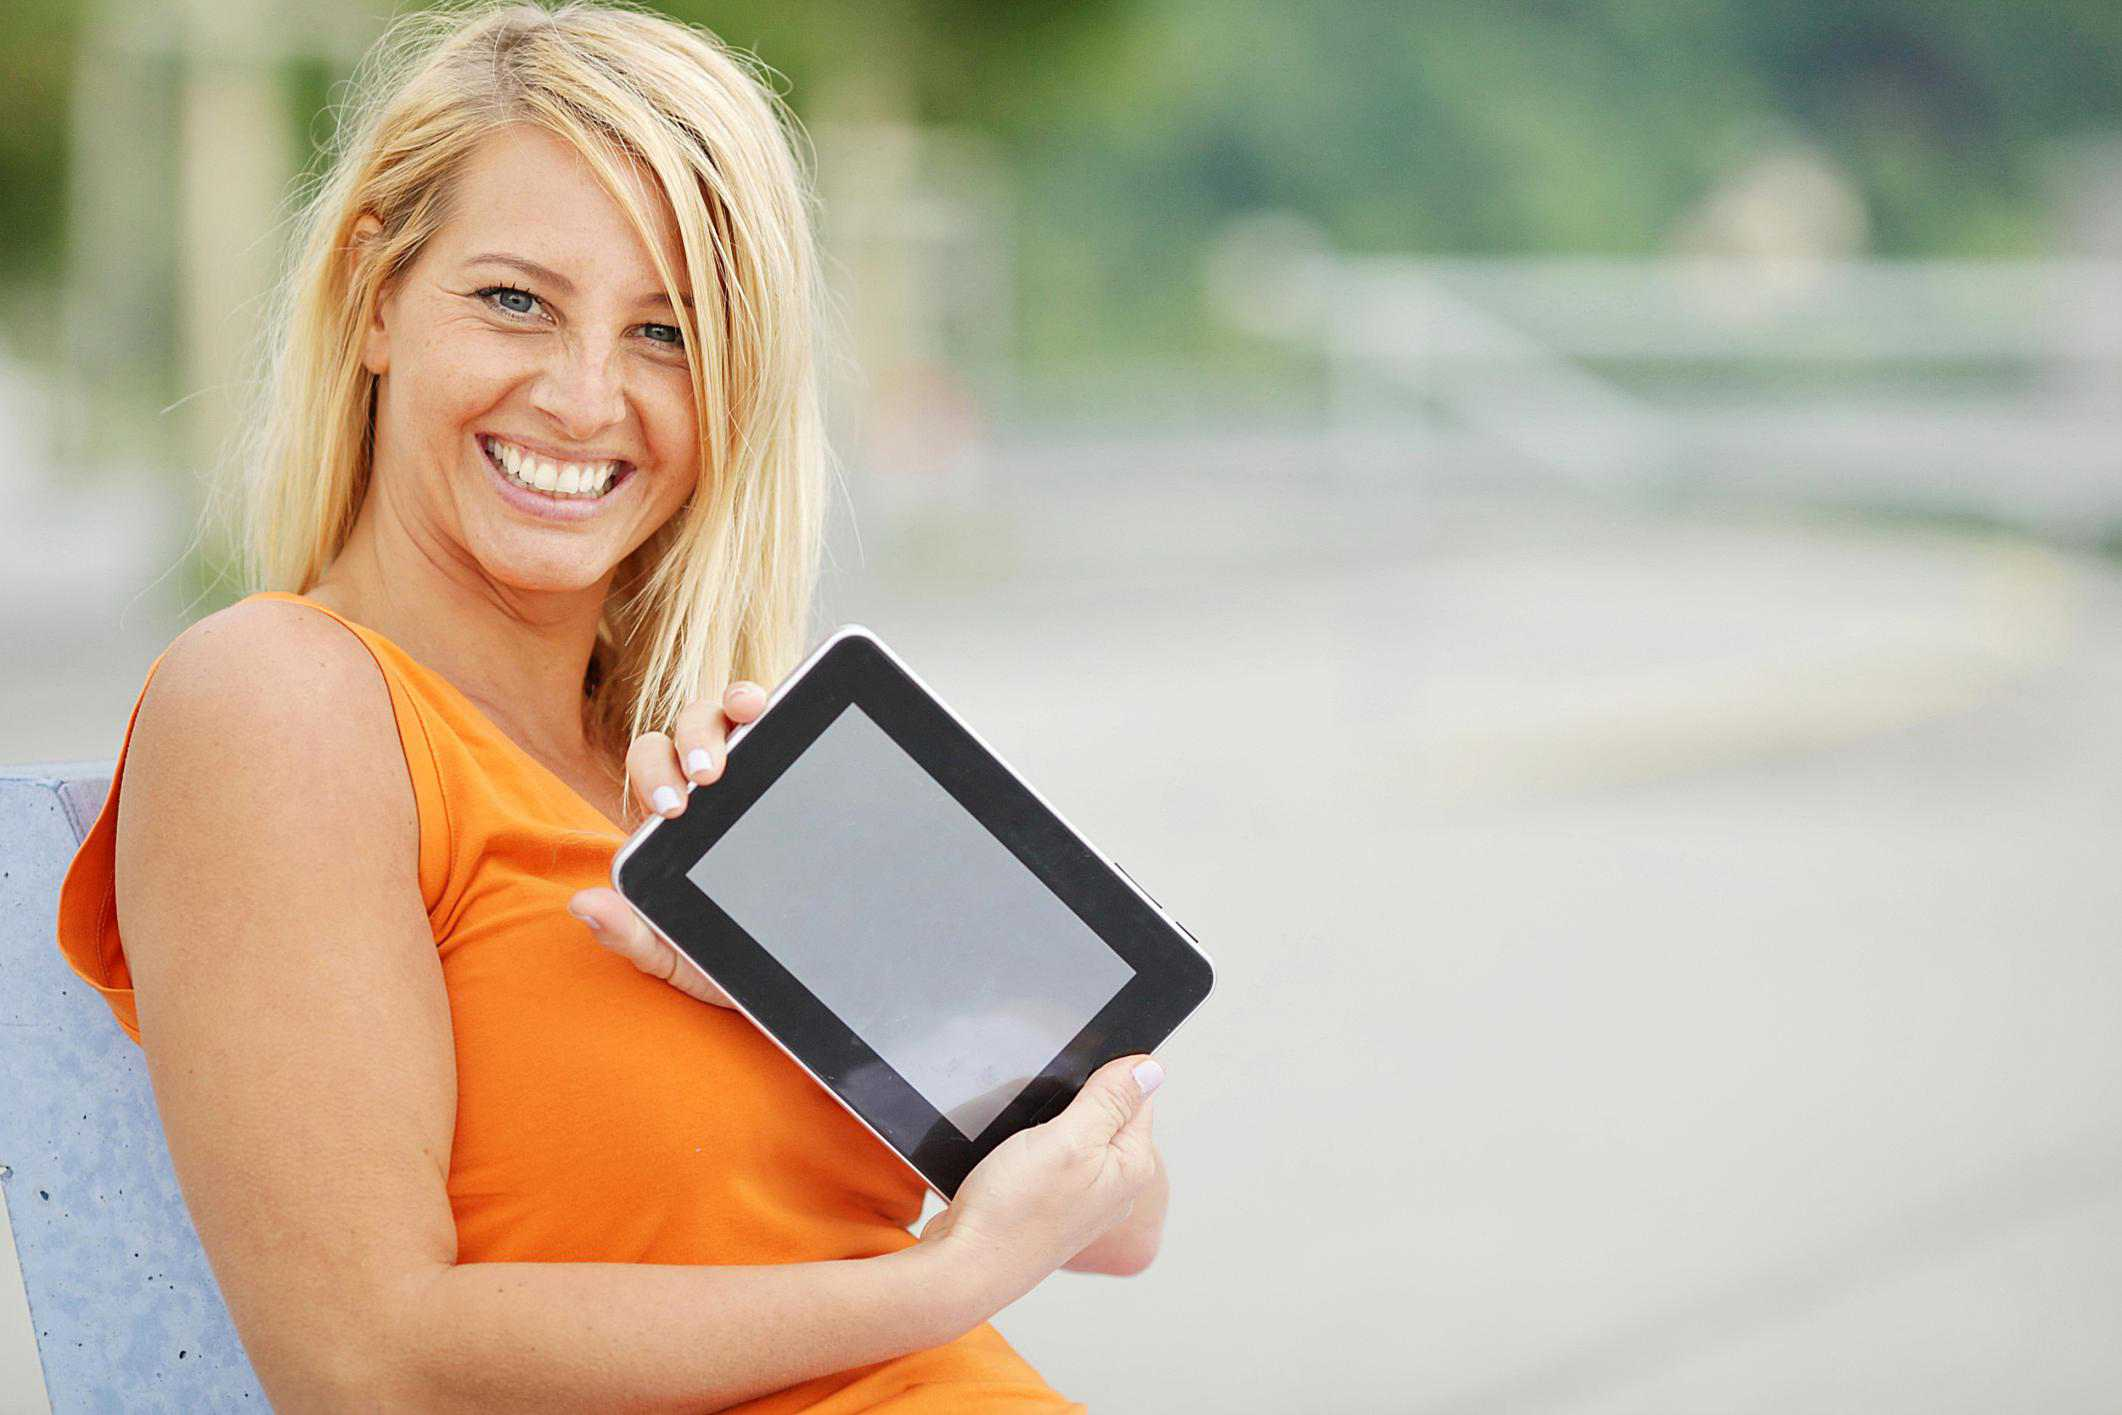 Image of a Woman Happily Holding a Tablet